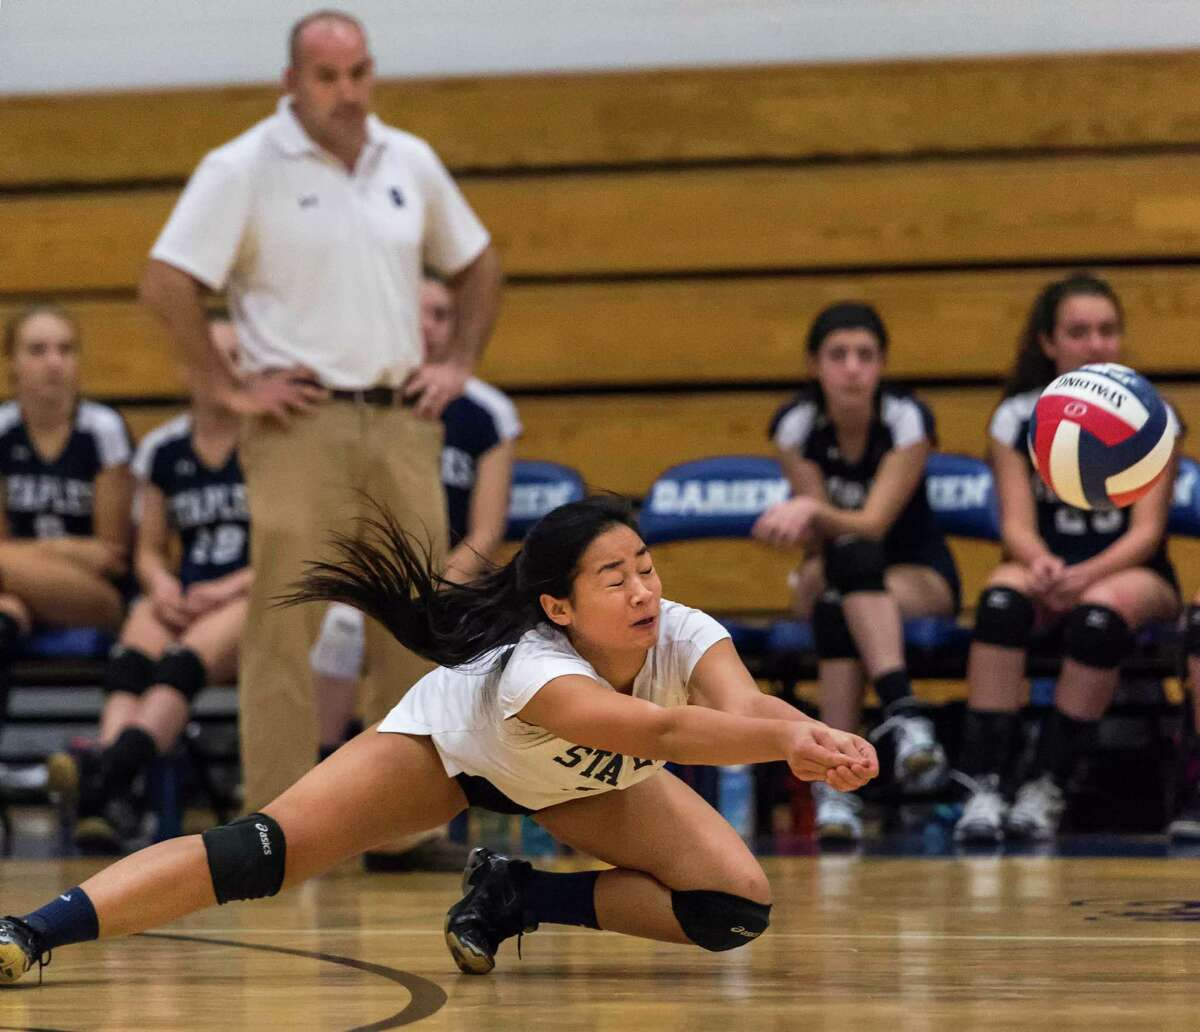 Staples High Schools Vanessa Engdives for the ball during an FCIAC girls volleyball tournament match against Darien High School played at Darien High School, Darien, CT Tuesday, November 3, 2015.